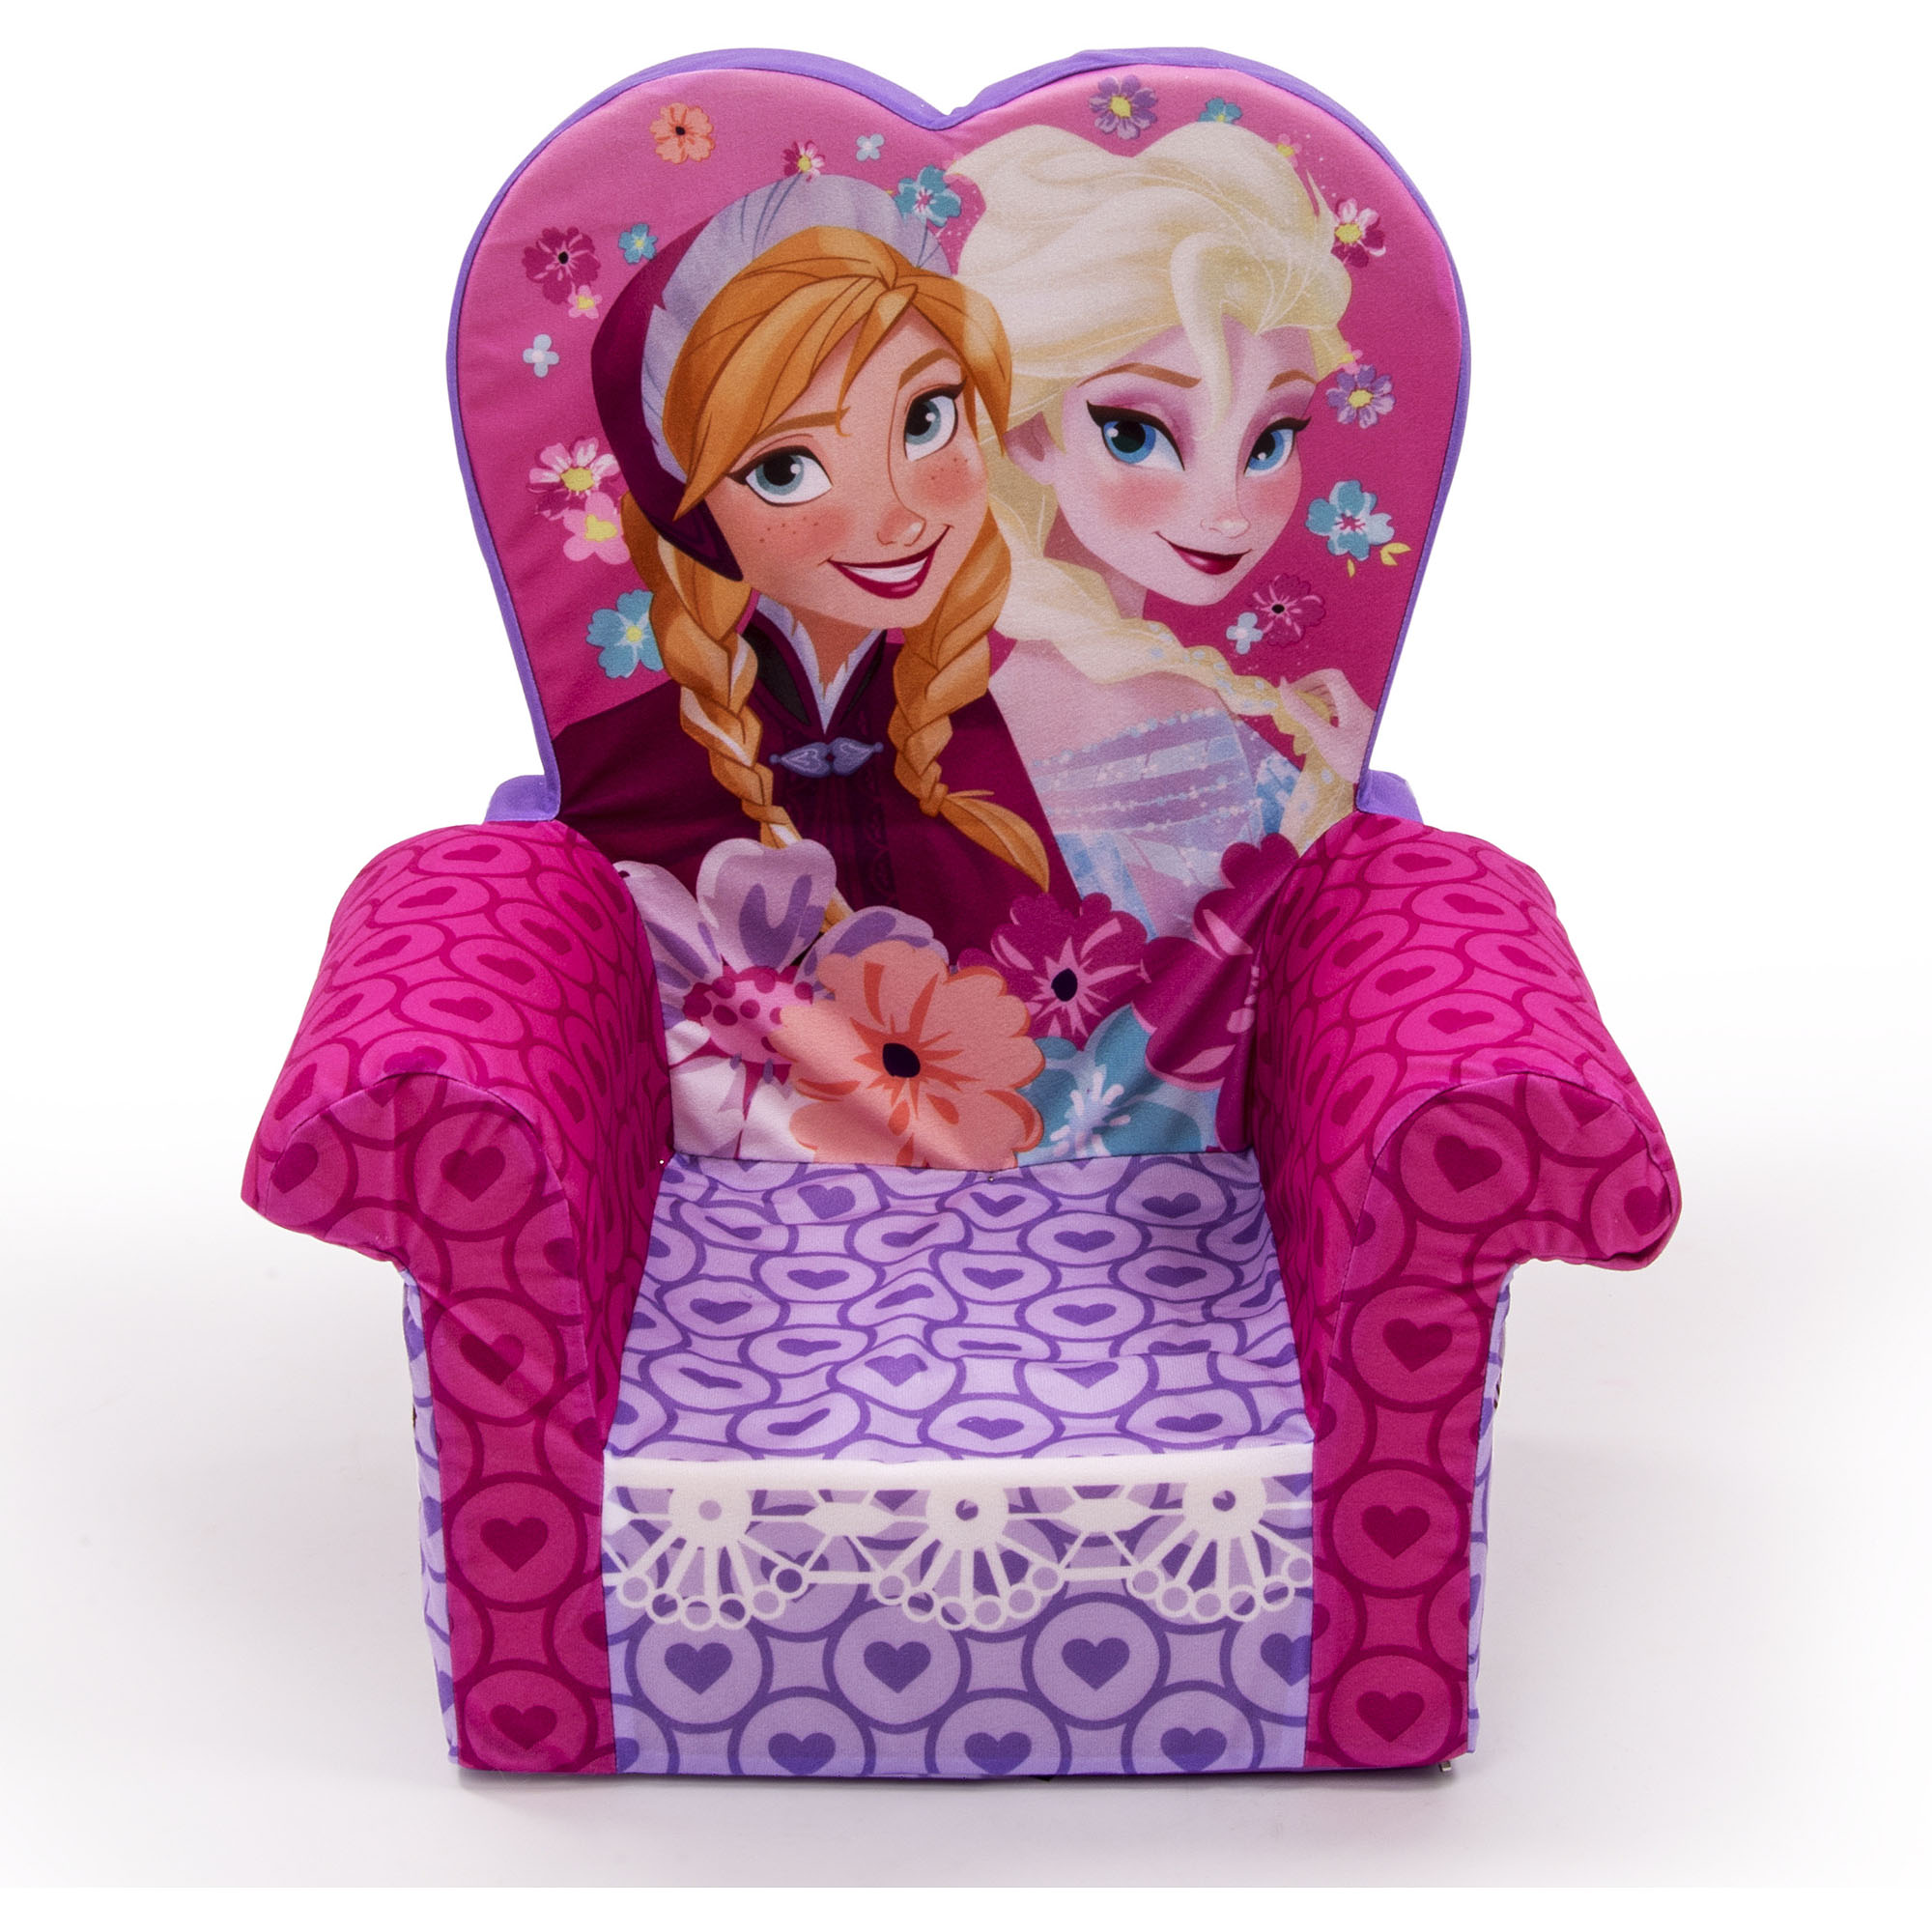 frozen flip sofa canada best filling for seat cushions marshmallow furniture 2 in 1 open mickey mouse